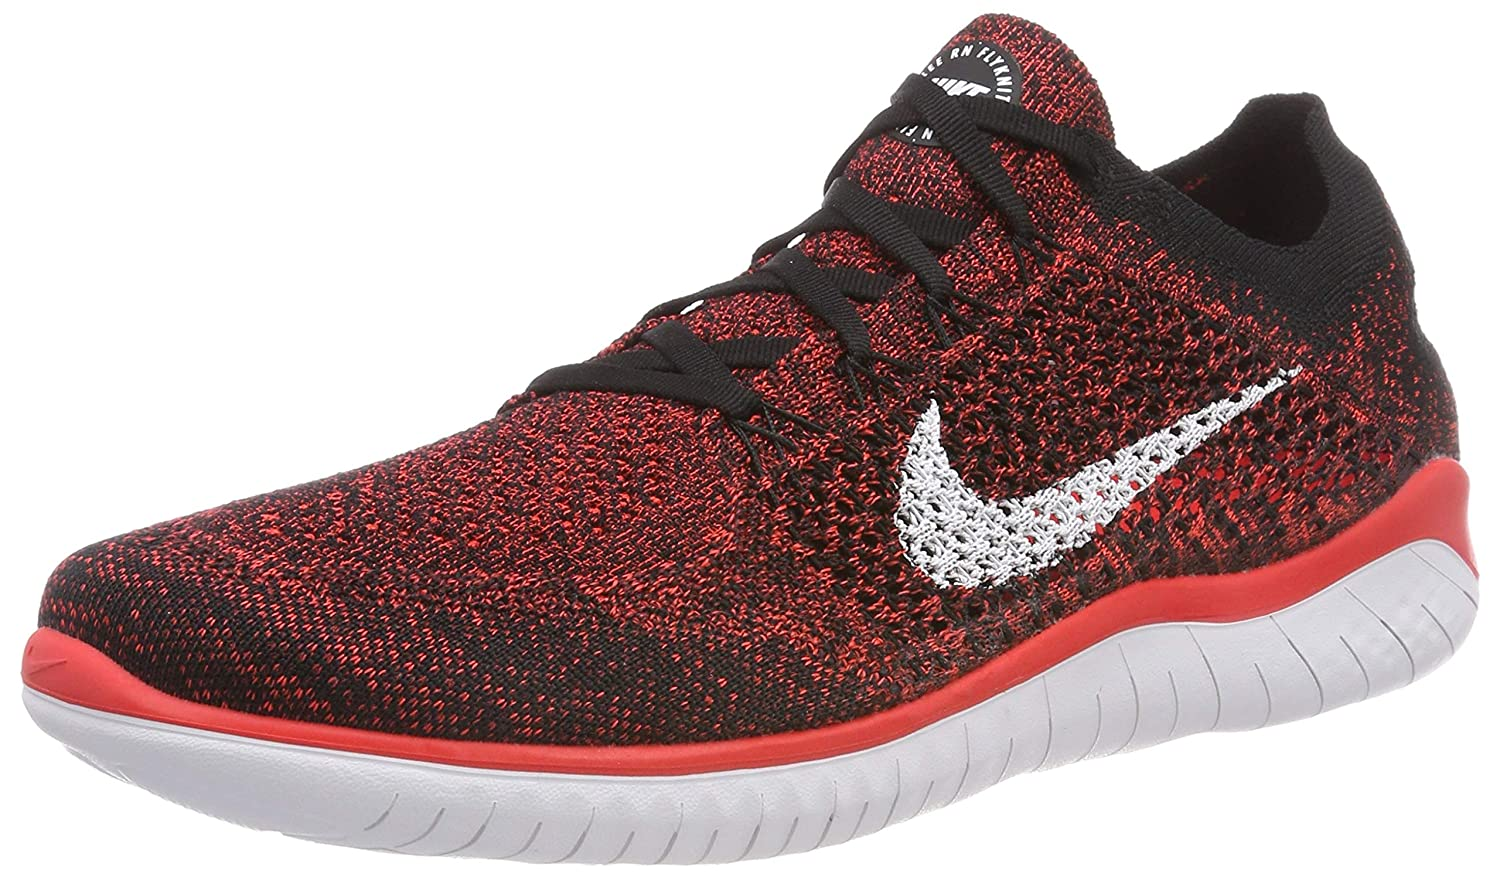 Men's/Women's NIKE Men's Men's Men's Free Rn Flyknit 2018 Running Shoe Many varieties Elegant and sturdy packaging Outstanding style HN11609 71d6d5